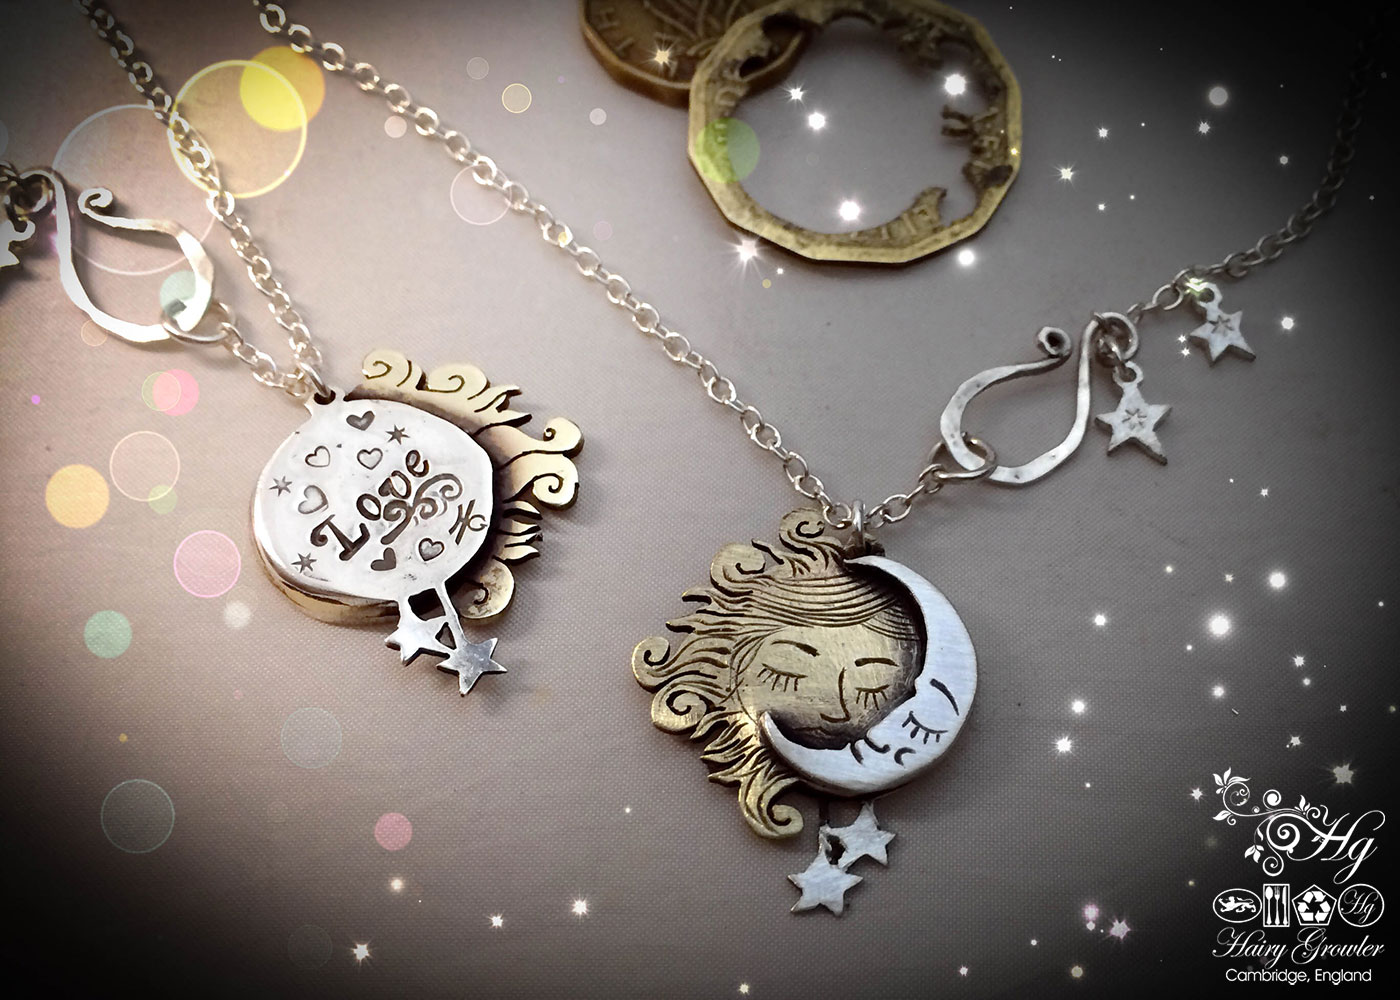 Handmade and upcycled silver coins made into a beautiful artisan sun and moon lovers necklace